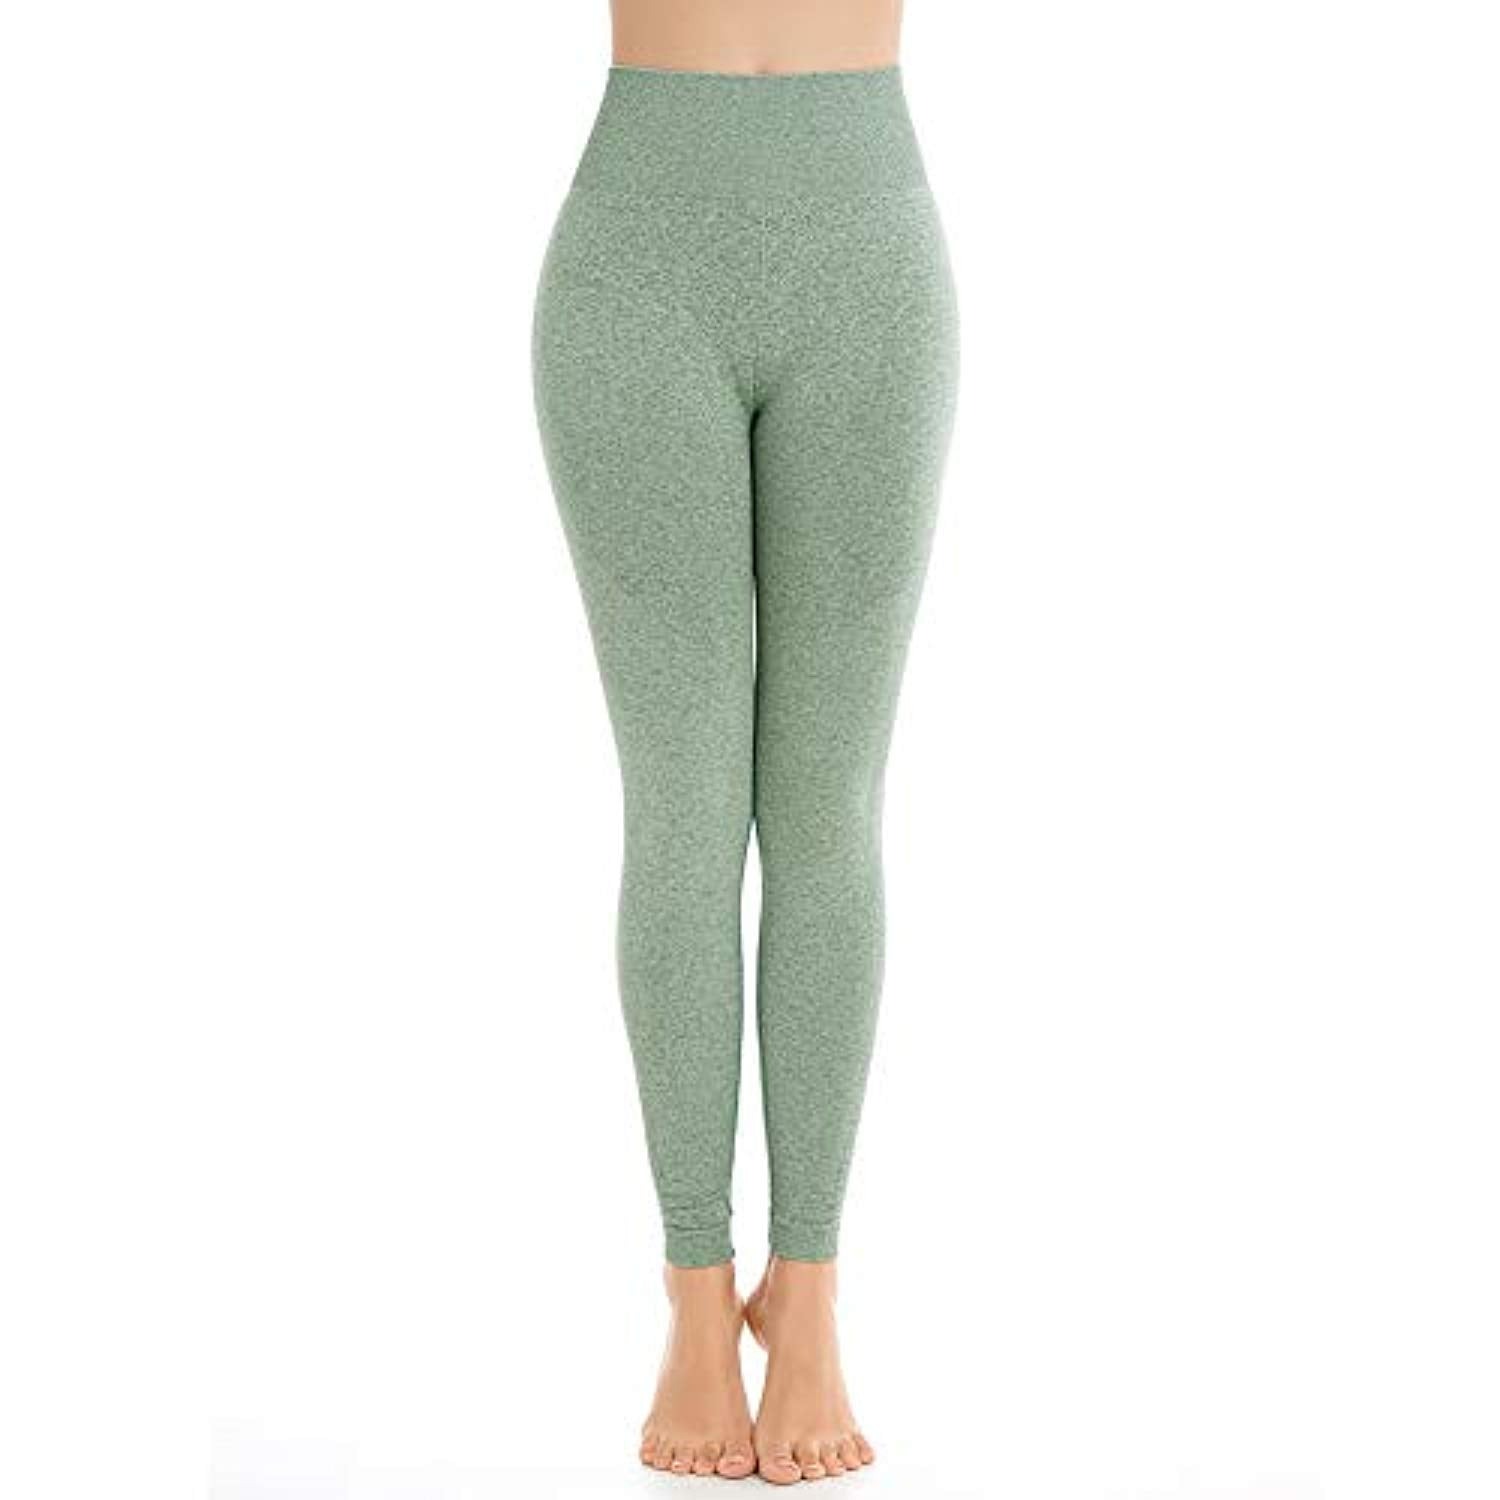 abcc61dbf9fb03 Aoxjox Yoga Pants for Women High Waisted Gym Sport Ombre Seamless Leggings